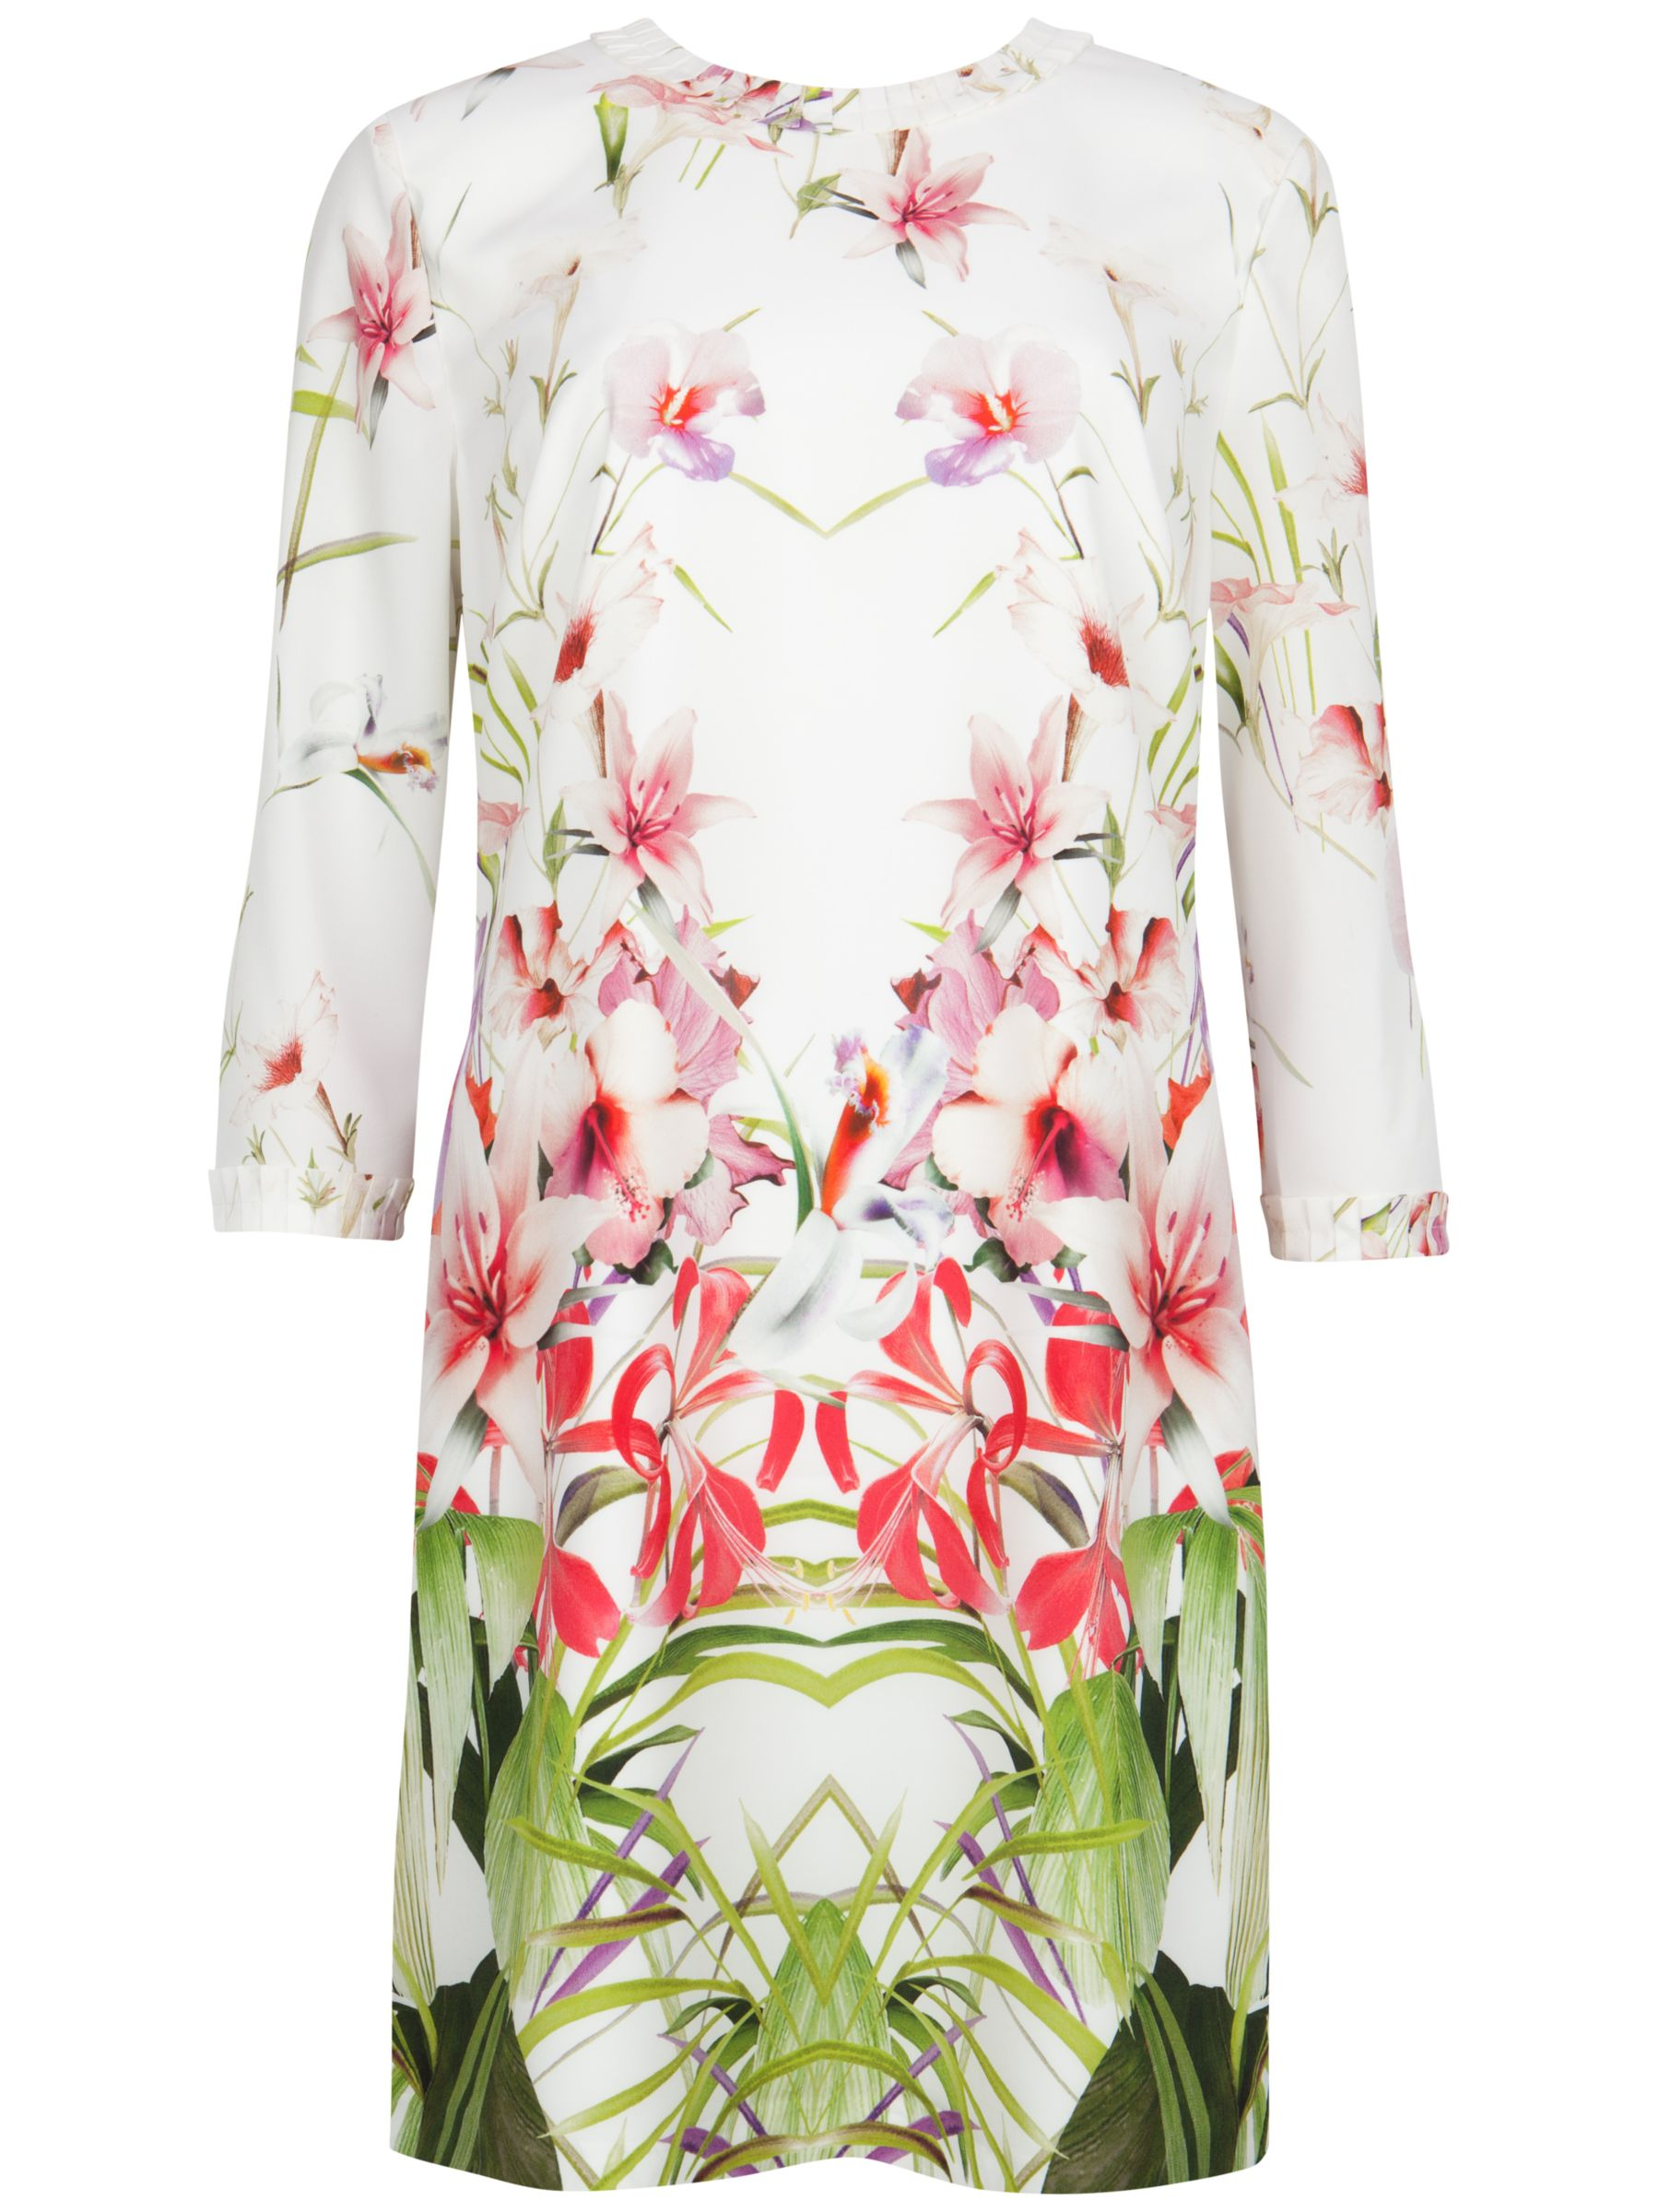 ted baker oletta mirrored tropics tunic dress ivory, ted, baker, oletta, mirrored, tropics, tunic, dress, ivory, ted baker, 1|0|2|3|4|5, women, womens dresses, new in clothing, fashion magazine, womenswear, men, brands l-z, 1929610